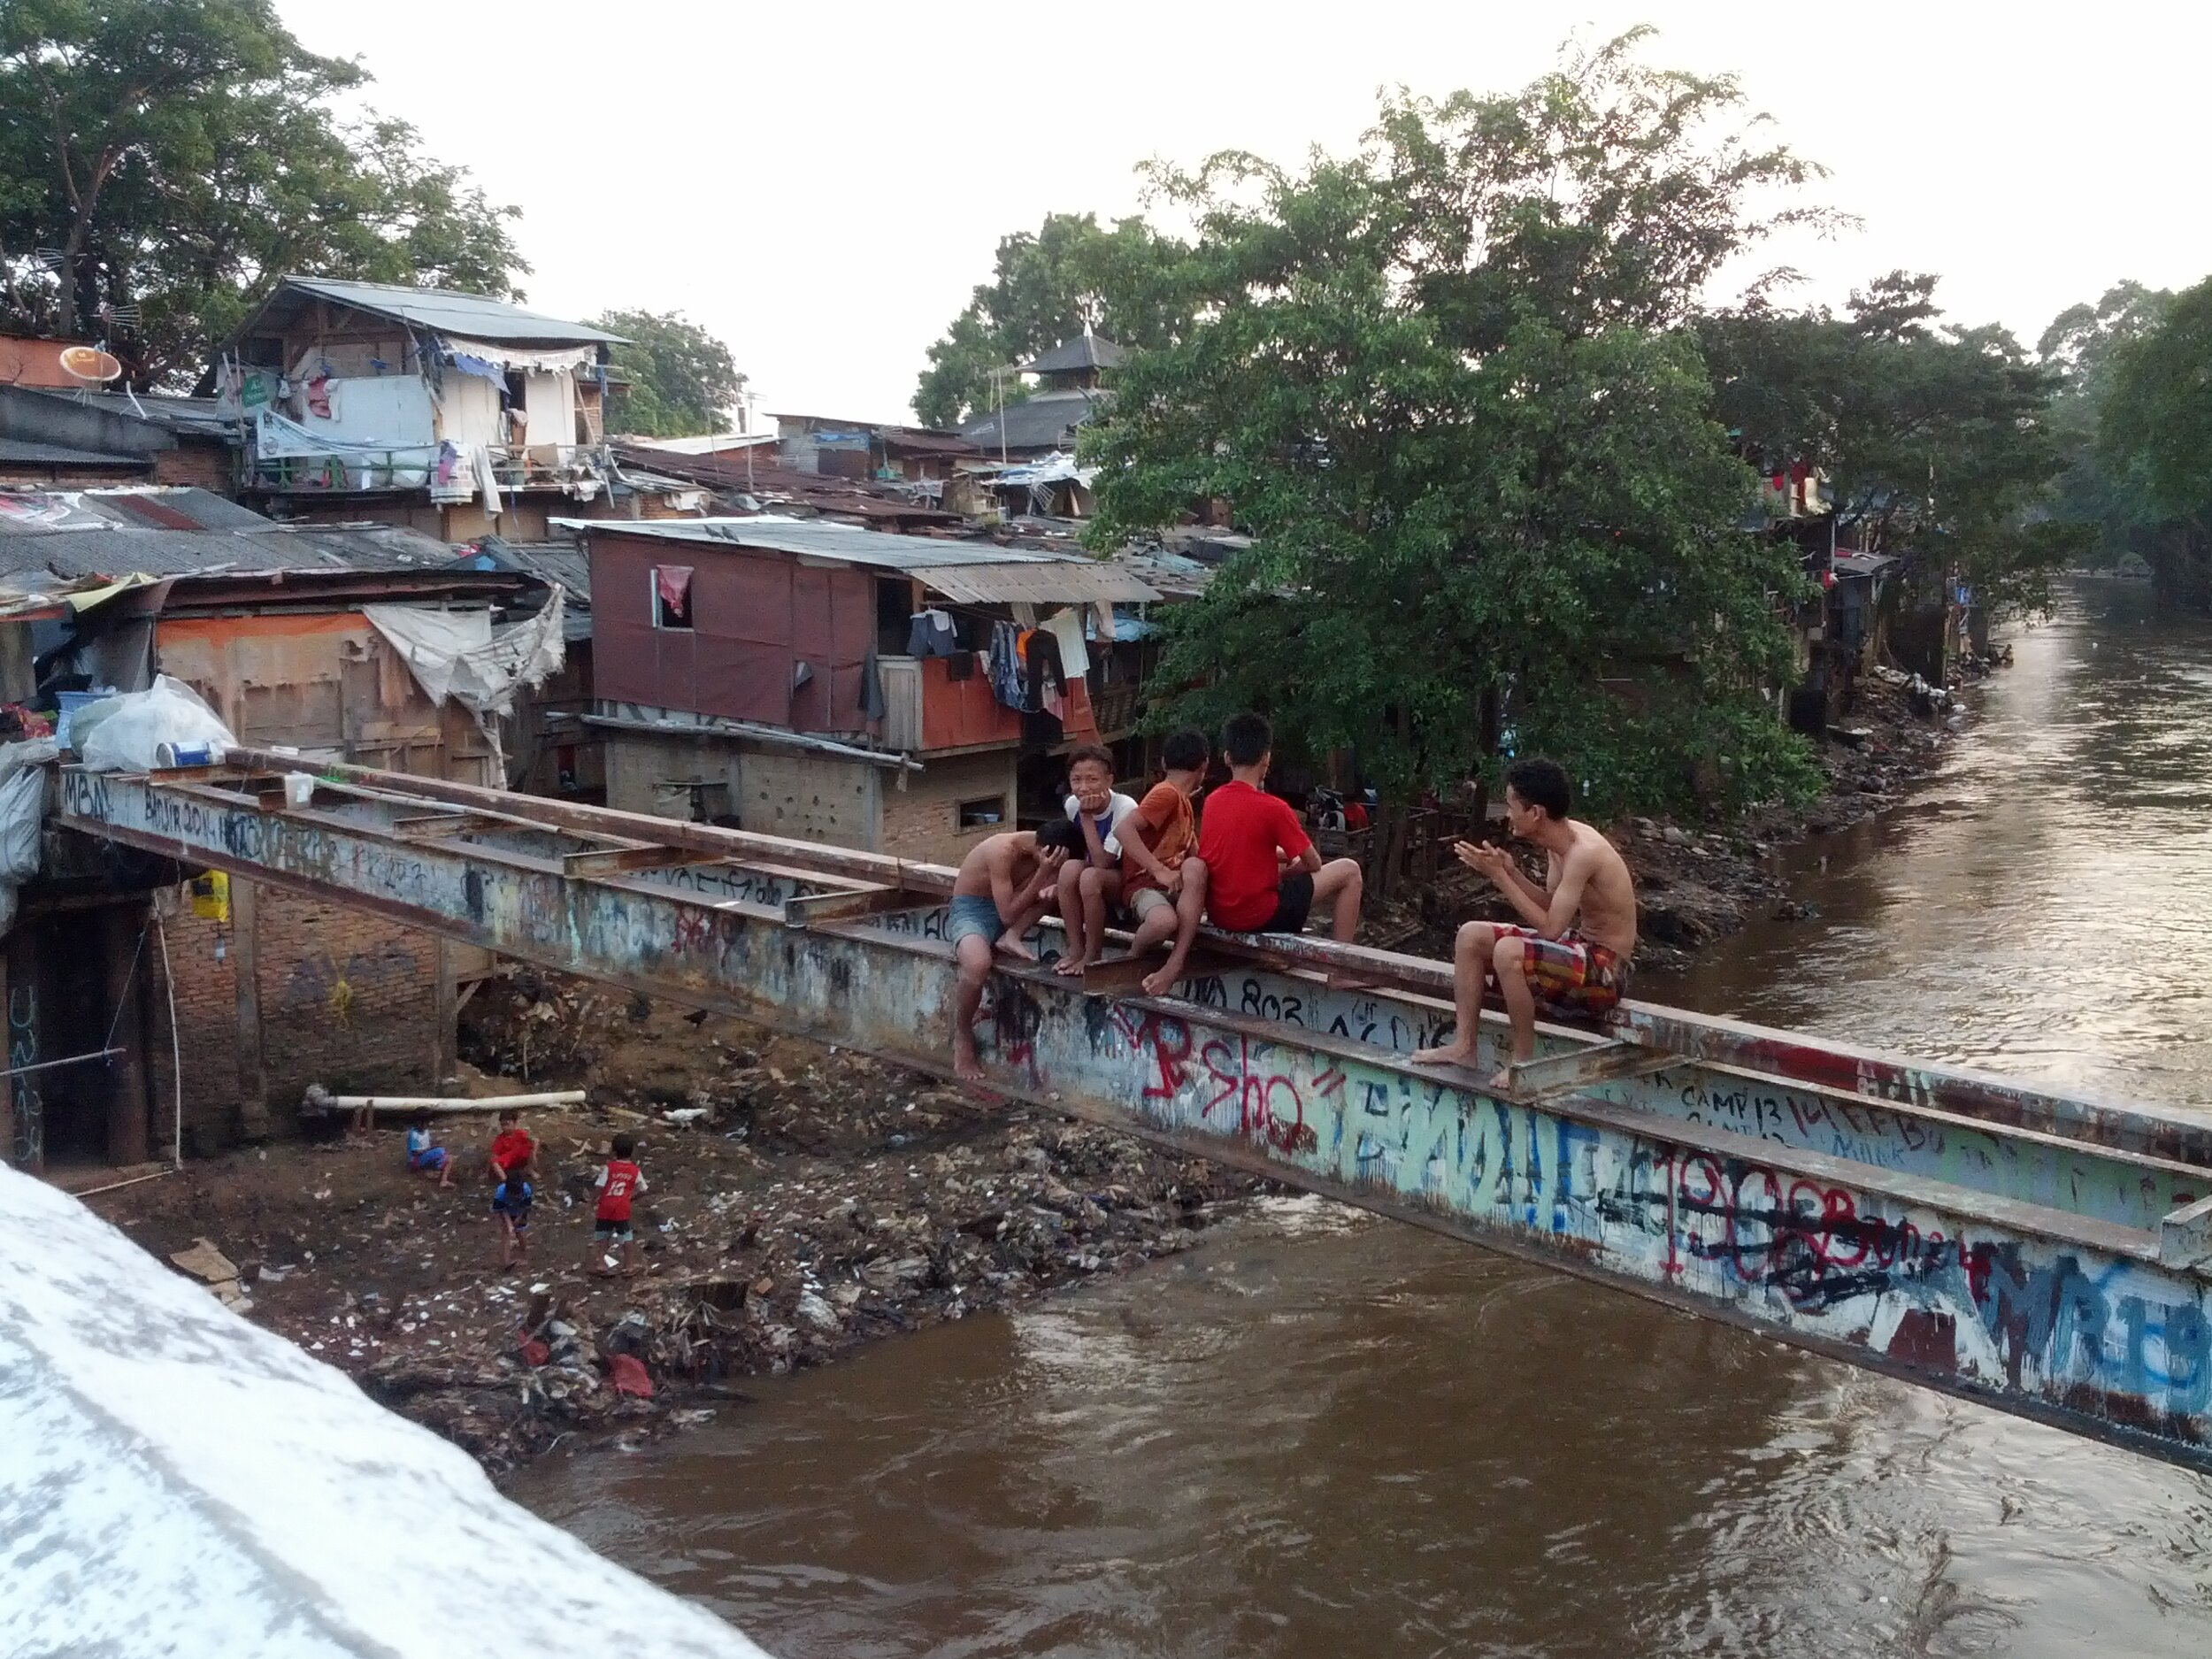 Figure 1. A view from a bridge across River Ciliwung at Kampung Pulo, 2015. In the kampungs, infrastructure is inadequate and buildings are constructed incrementally, not subject to building codes. This kampung was demolished in August 2015 to expand the capacity of the river. Photograph by Abidin Kusno.